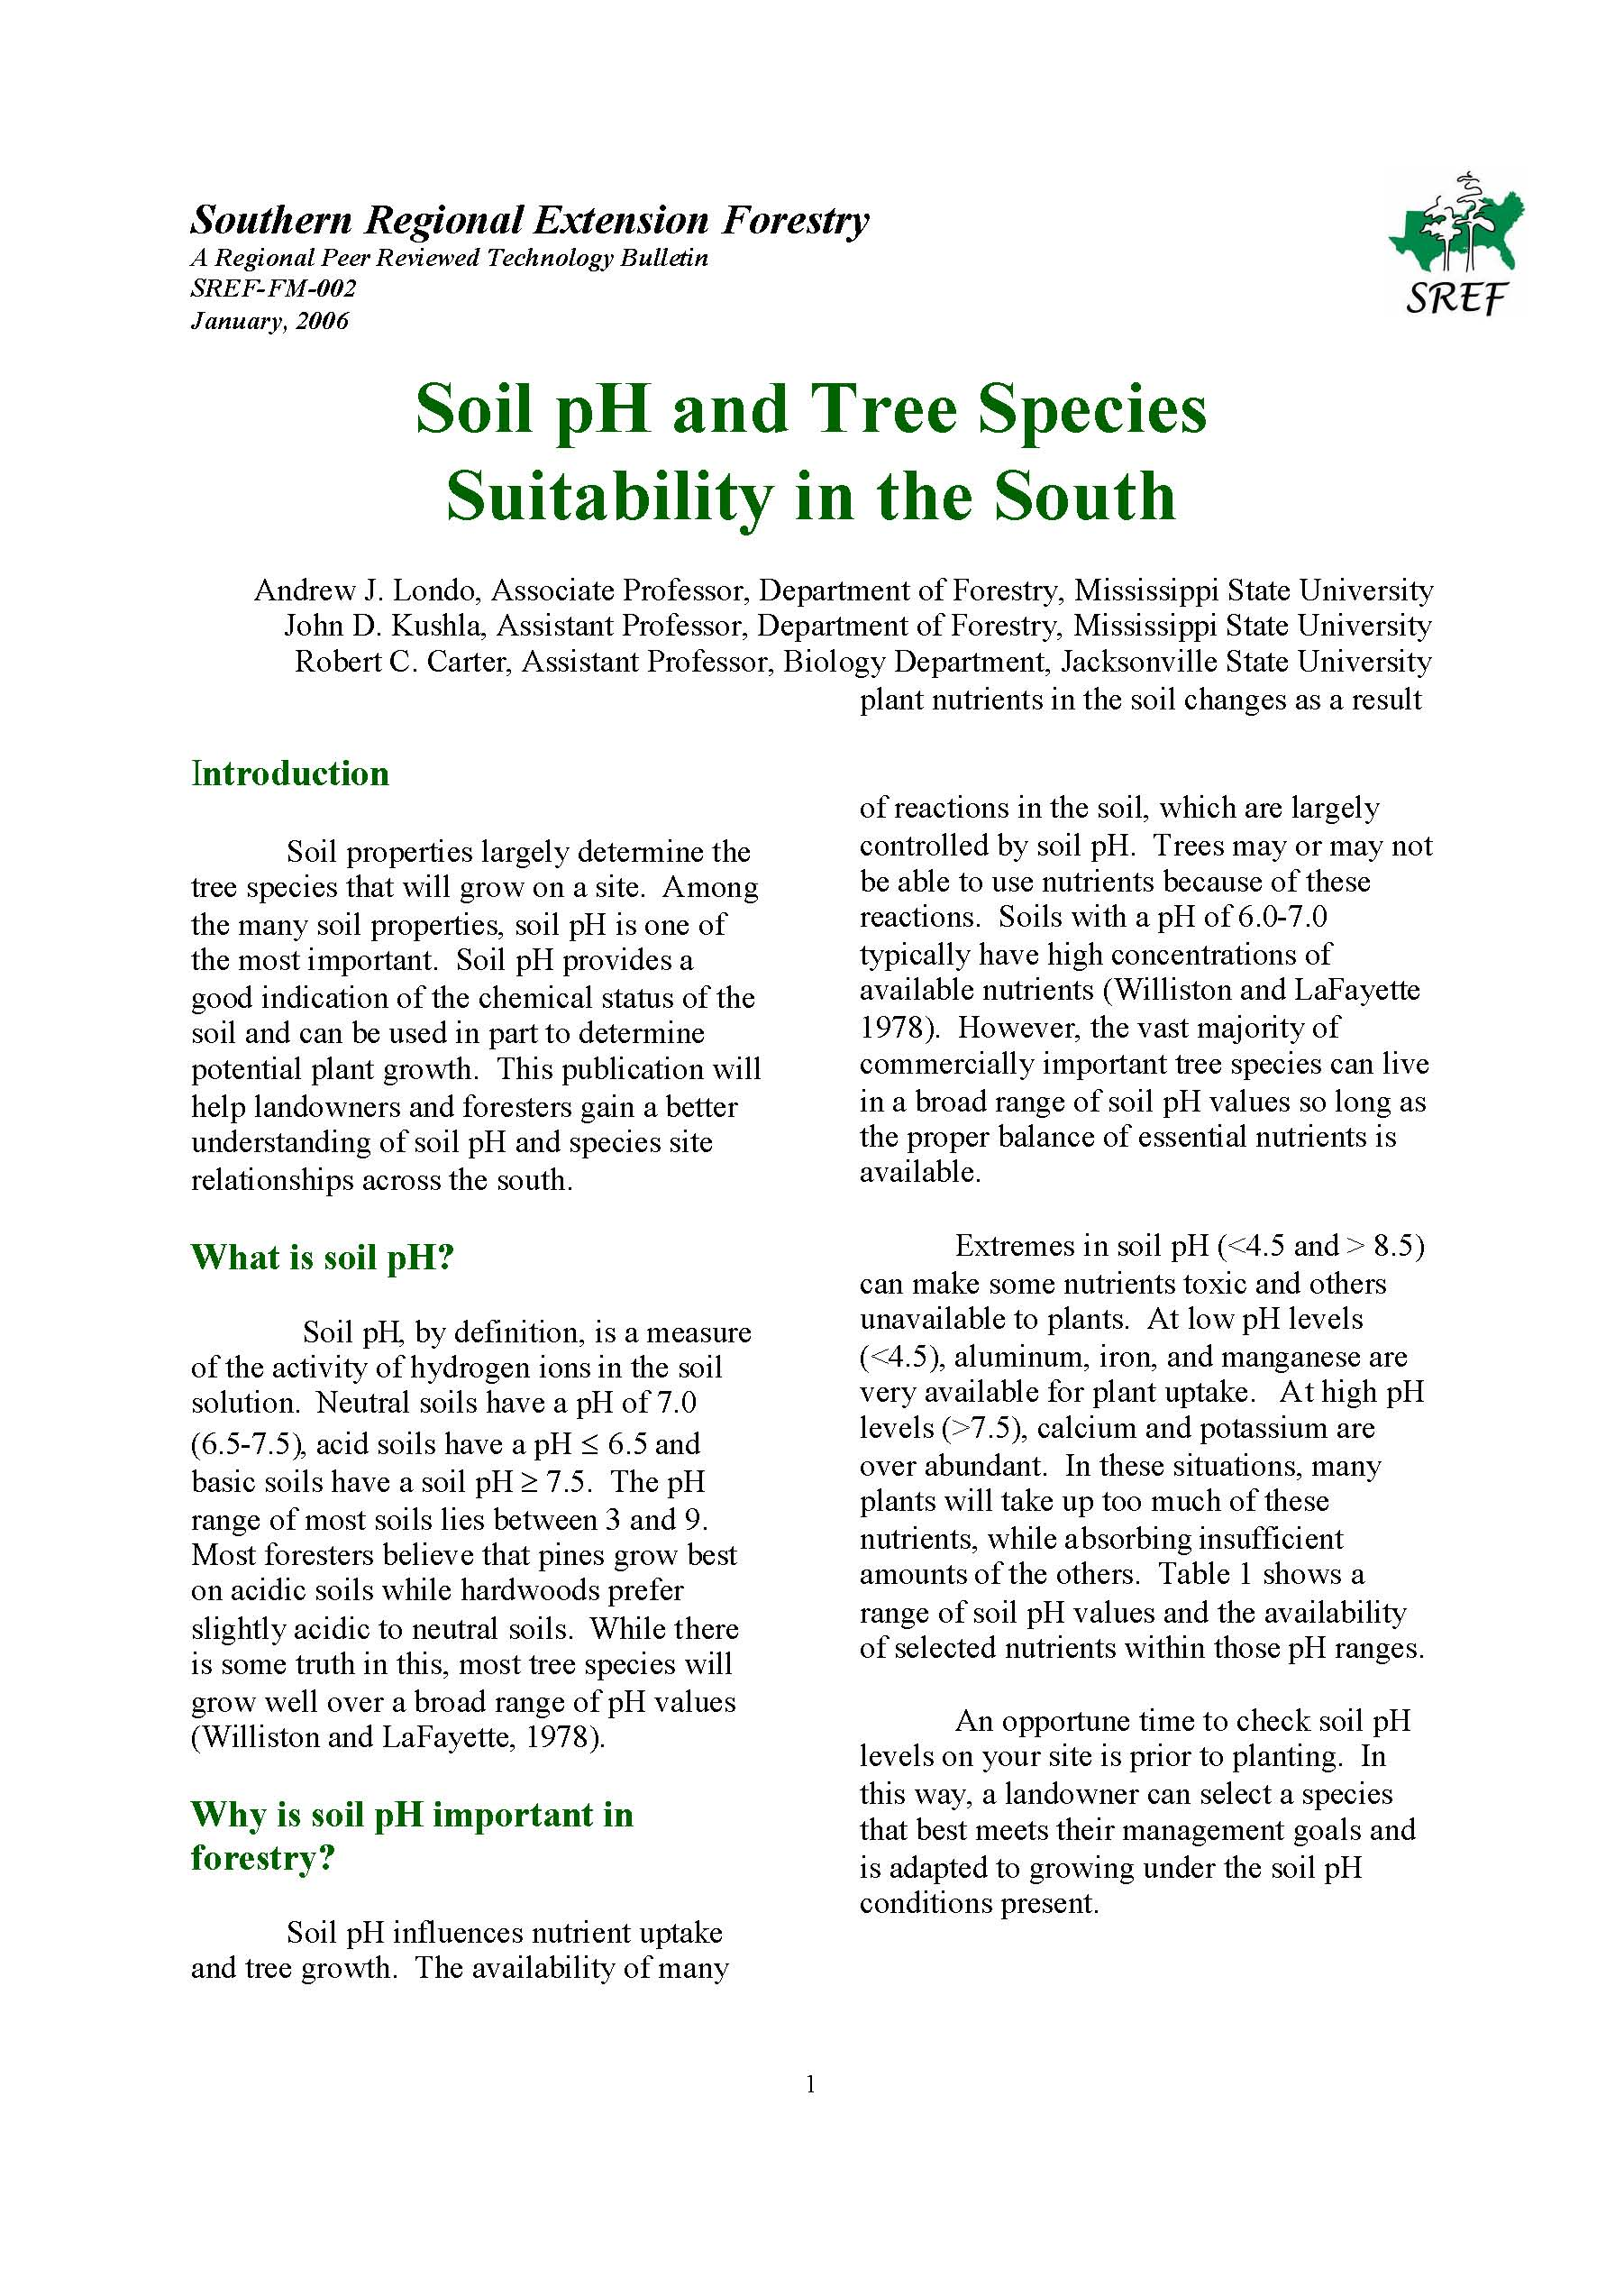 Soil pH and Tree Species Suitability in the South